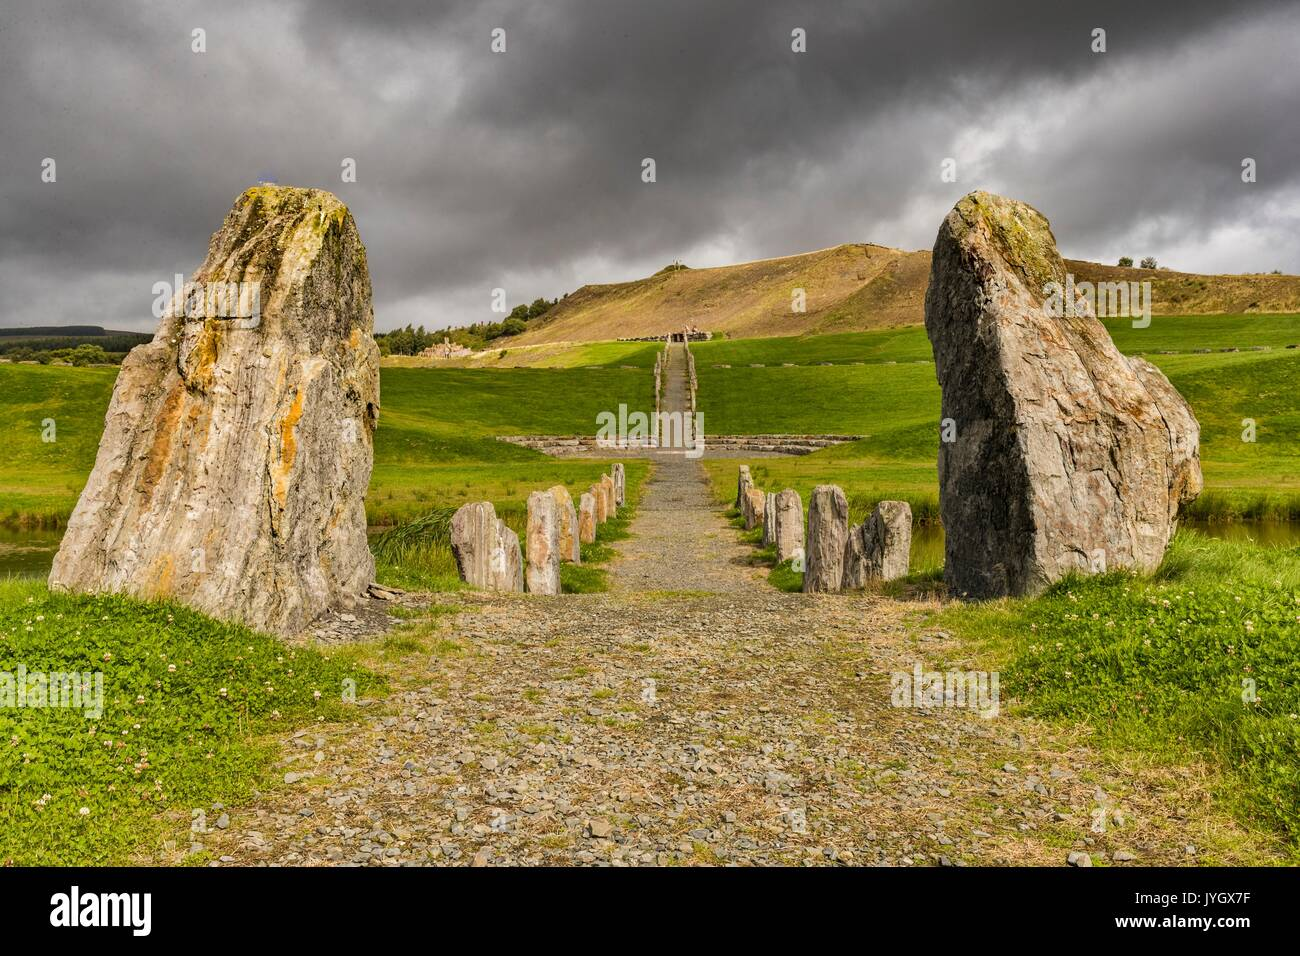 in Dumfries & Galloway, UK. 19th August, 2017. Changeable weather over the Crawick Multiverse Artland near Sanquhar in Dumfries & Galloway. This world-class landscape art design links the themes of space, astronomy and cosmology and is designed by globally-renowned landscape artist Charles Jencks. Credit: Rich Dyson/Alamy Live News - Stock Image